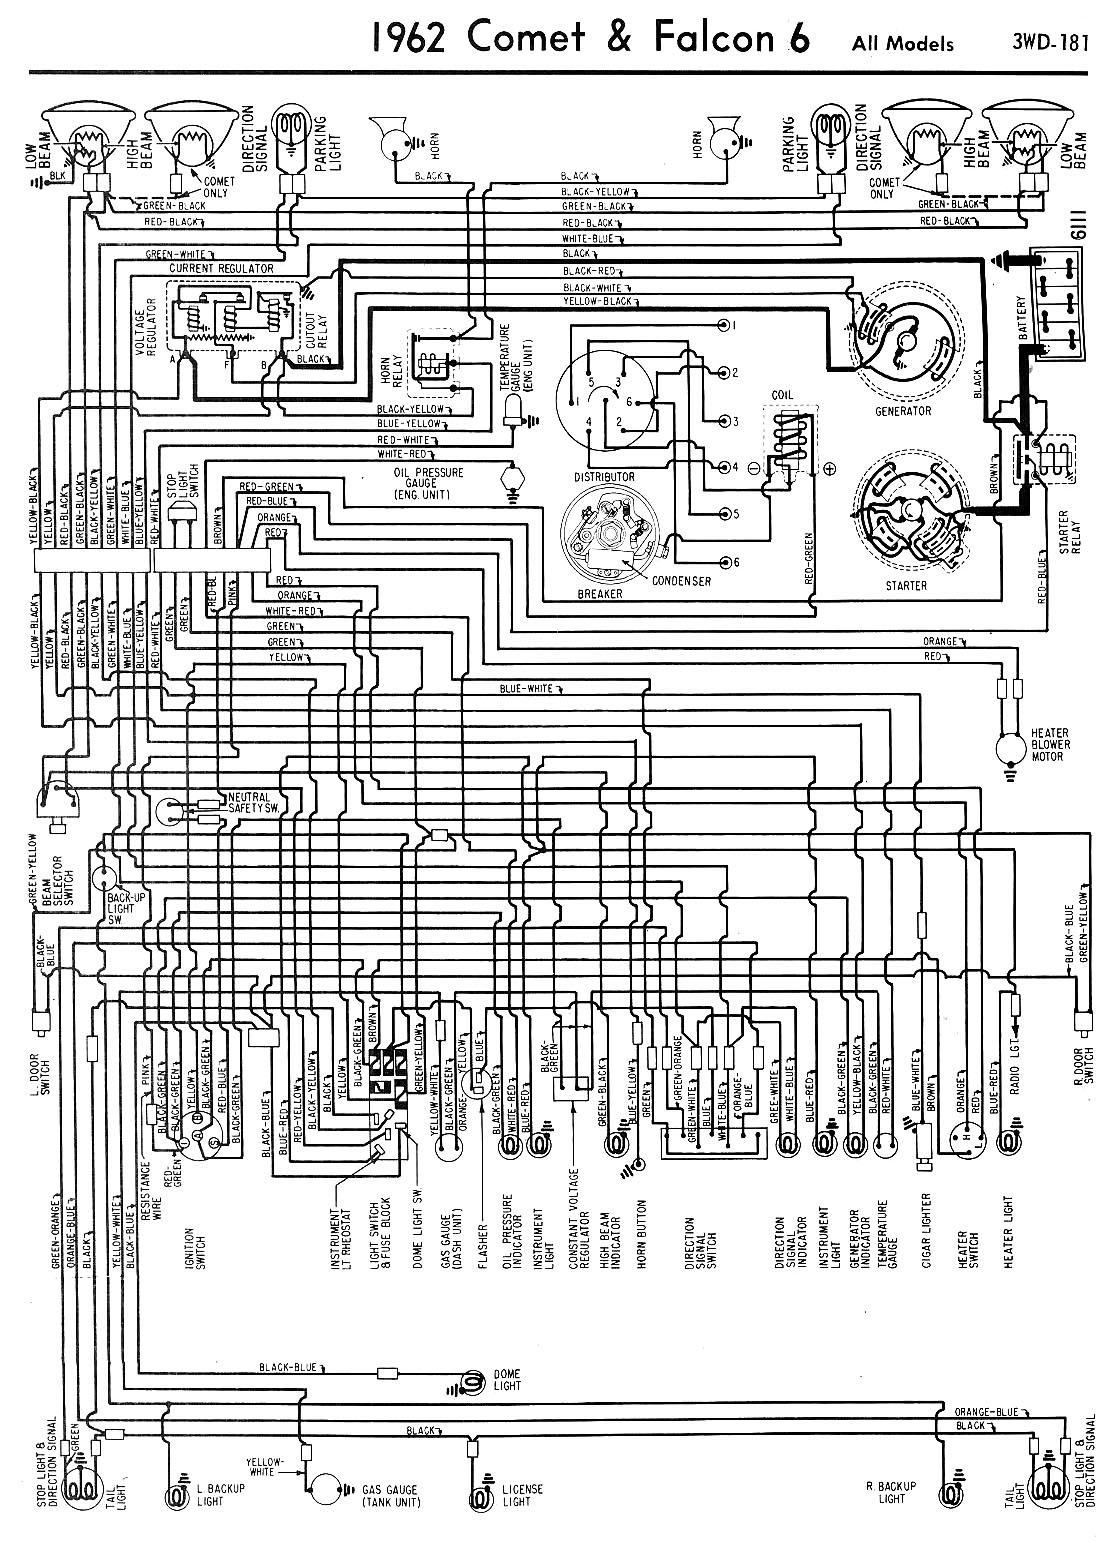 Falcon Diagrams 1962 Chevy C10 Steering Column Wiring Diagram 62 Comet